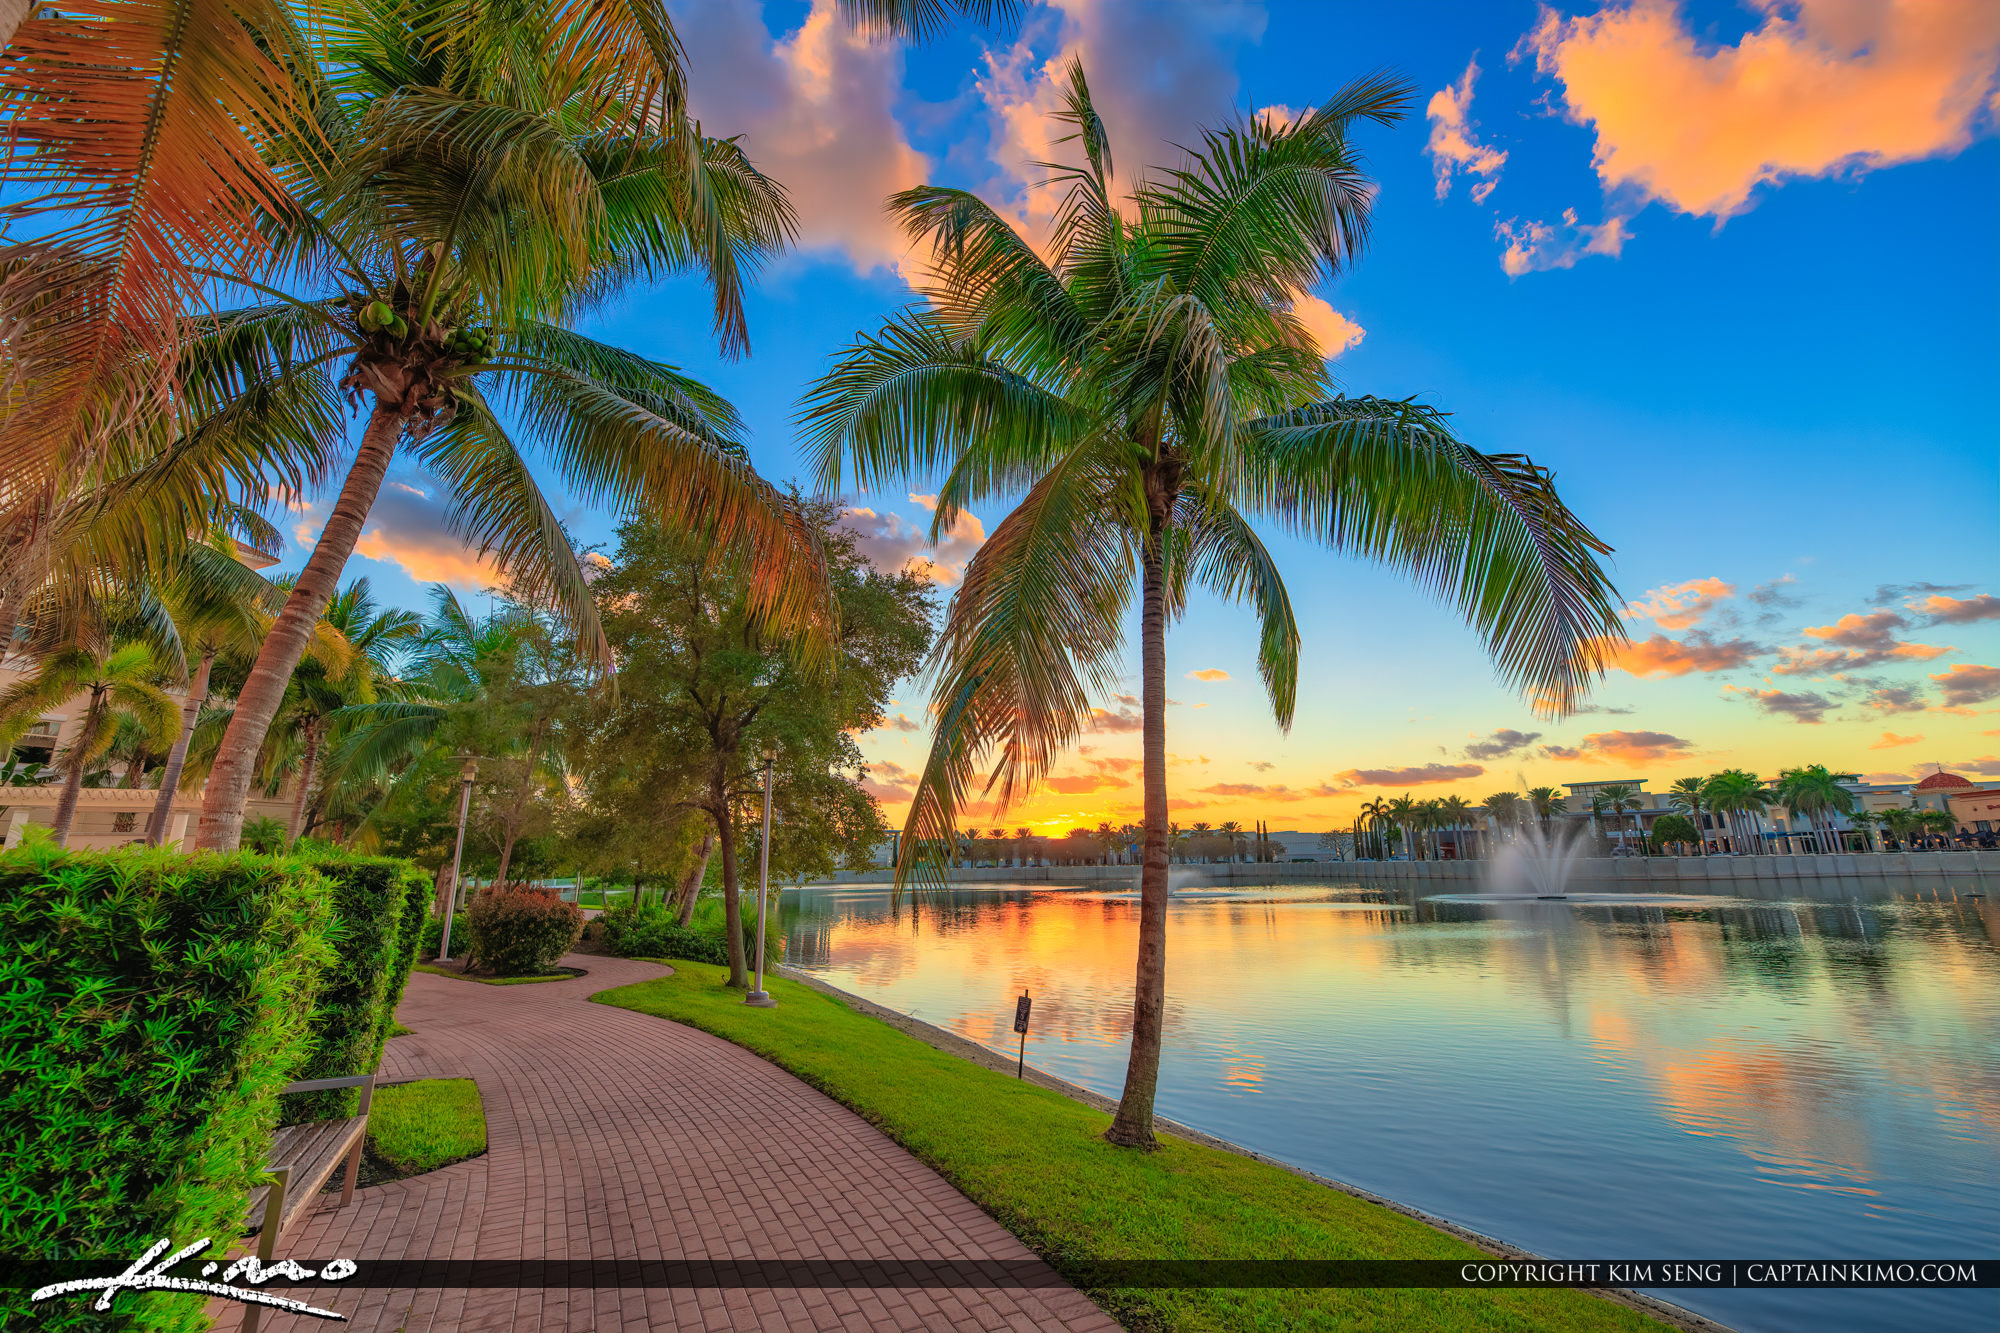 Coconut Tree along Lake at Palm Beach Gardens